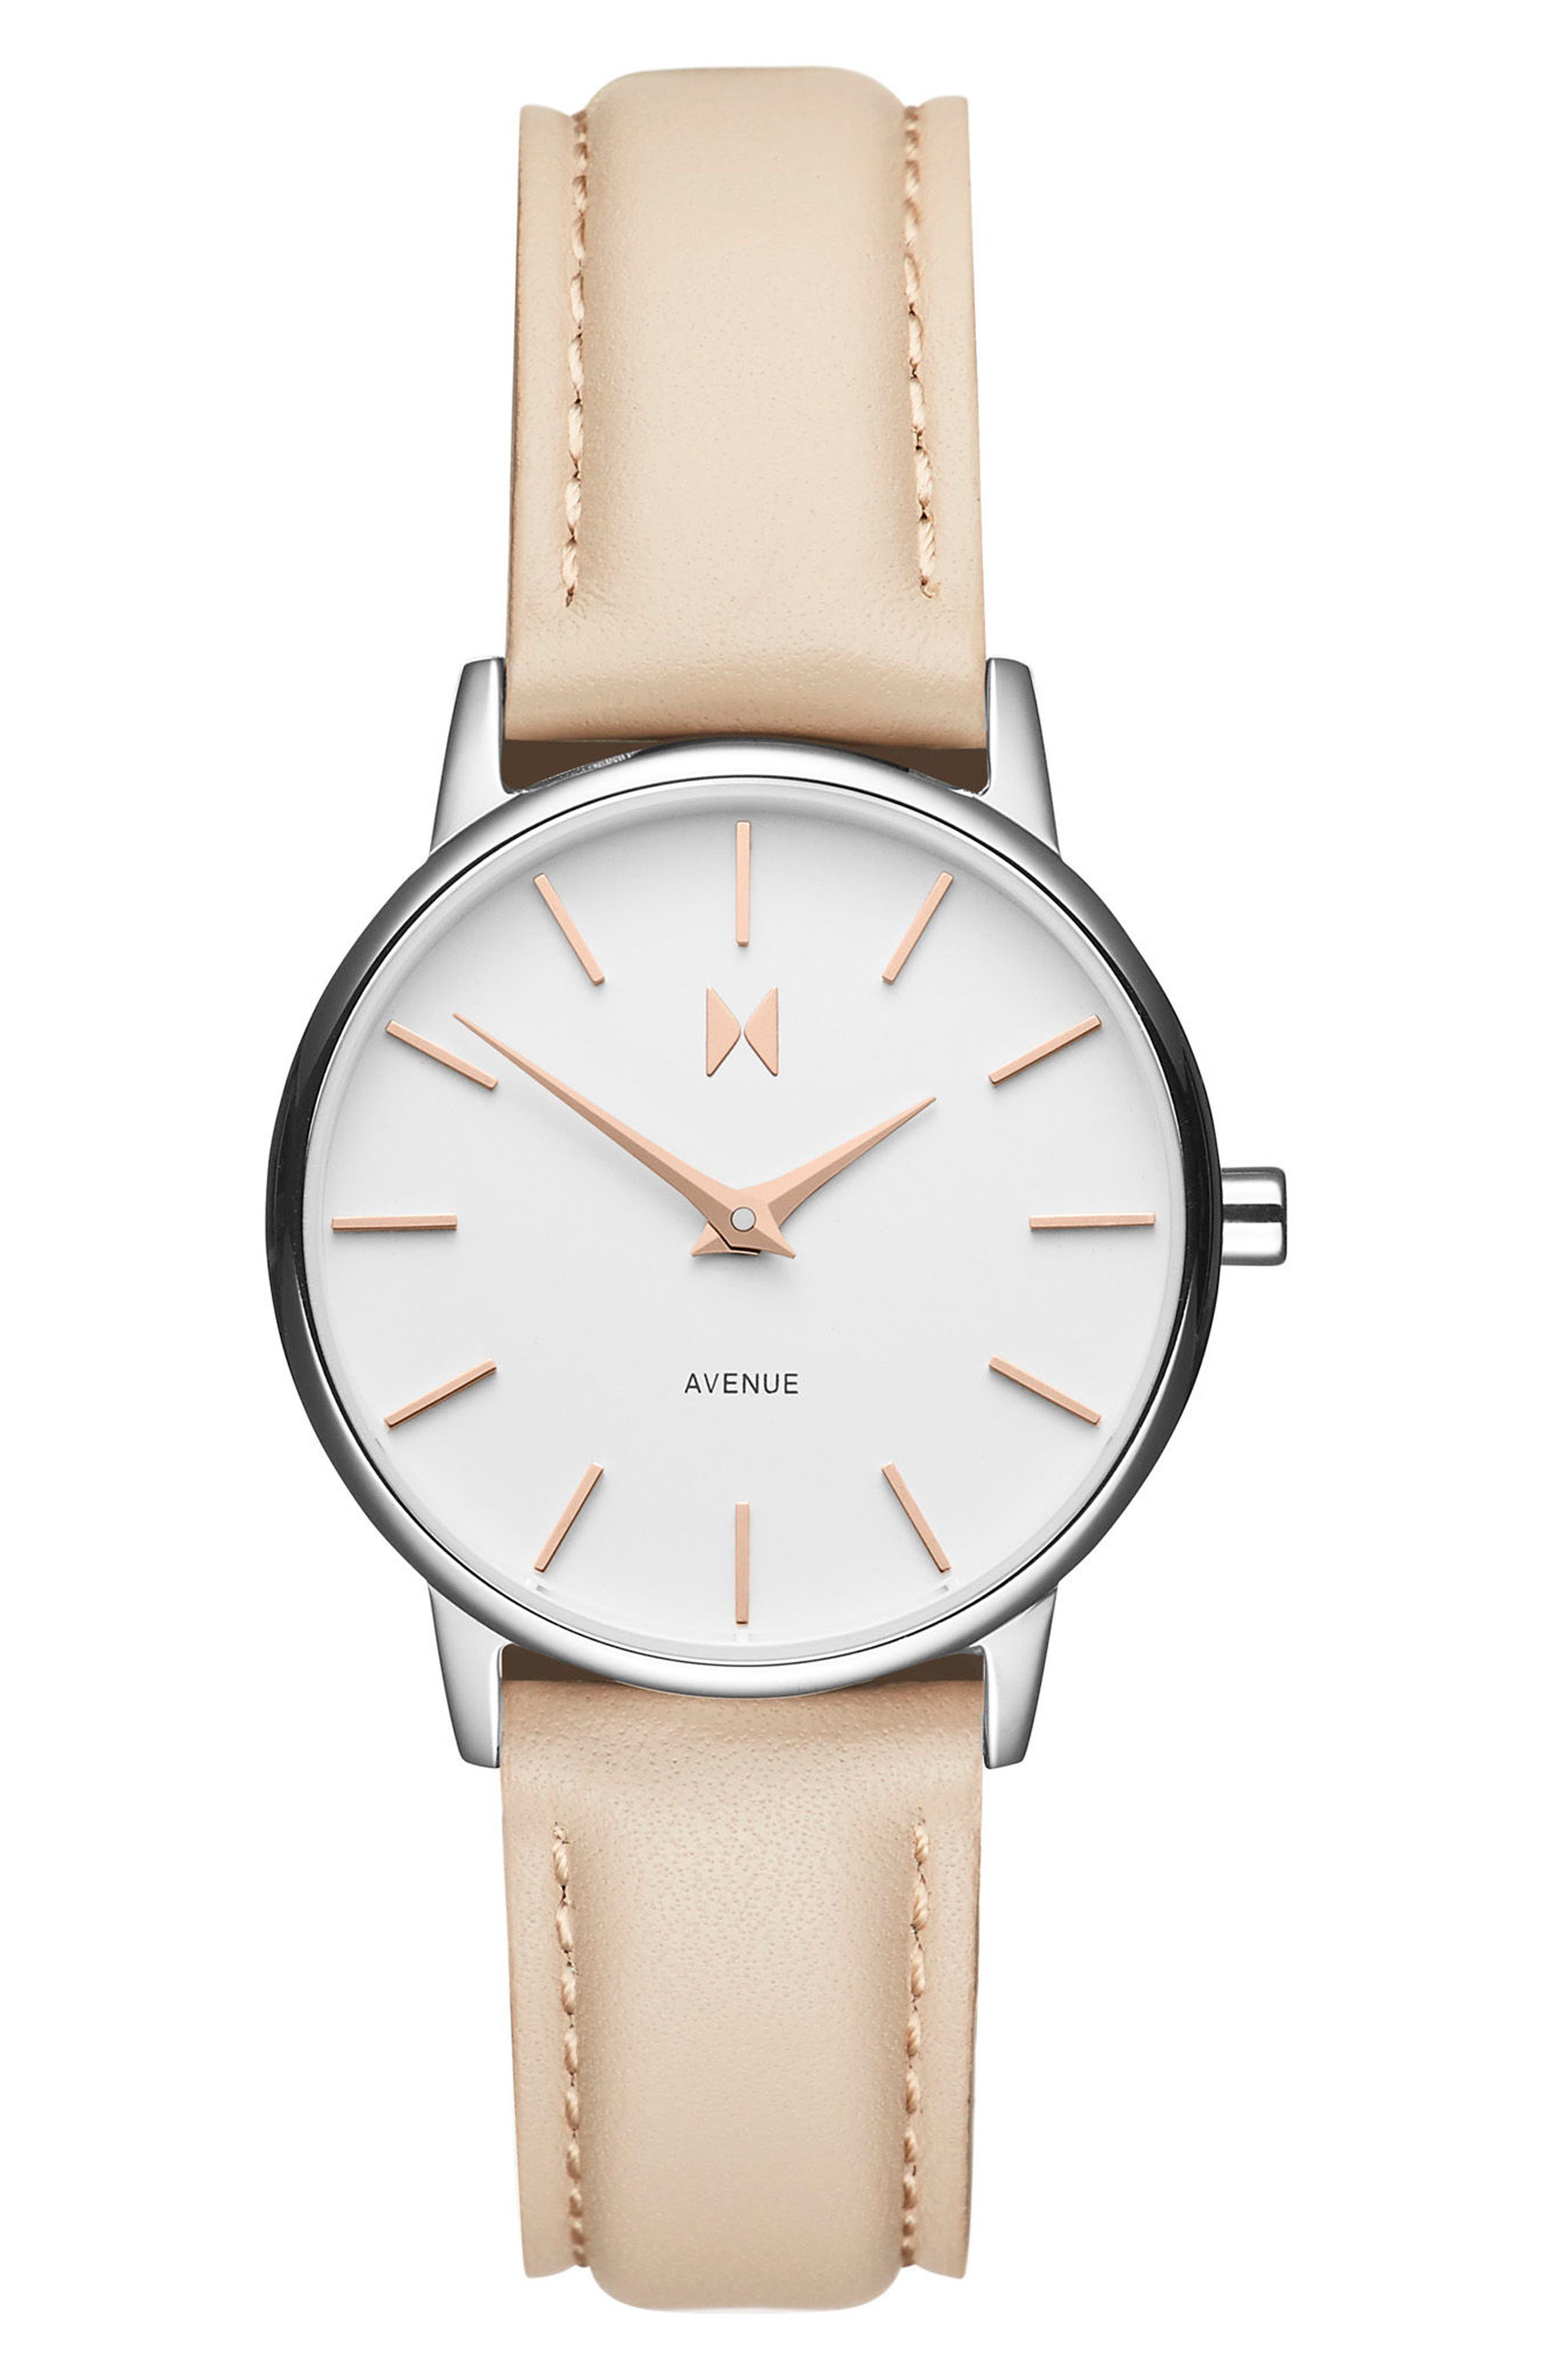 Belamar Leather Strap Watch, 28mm,                         Main,                         color, Creme/ White/ Silver